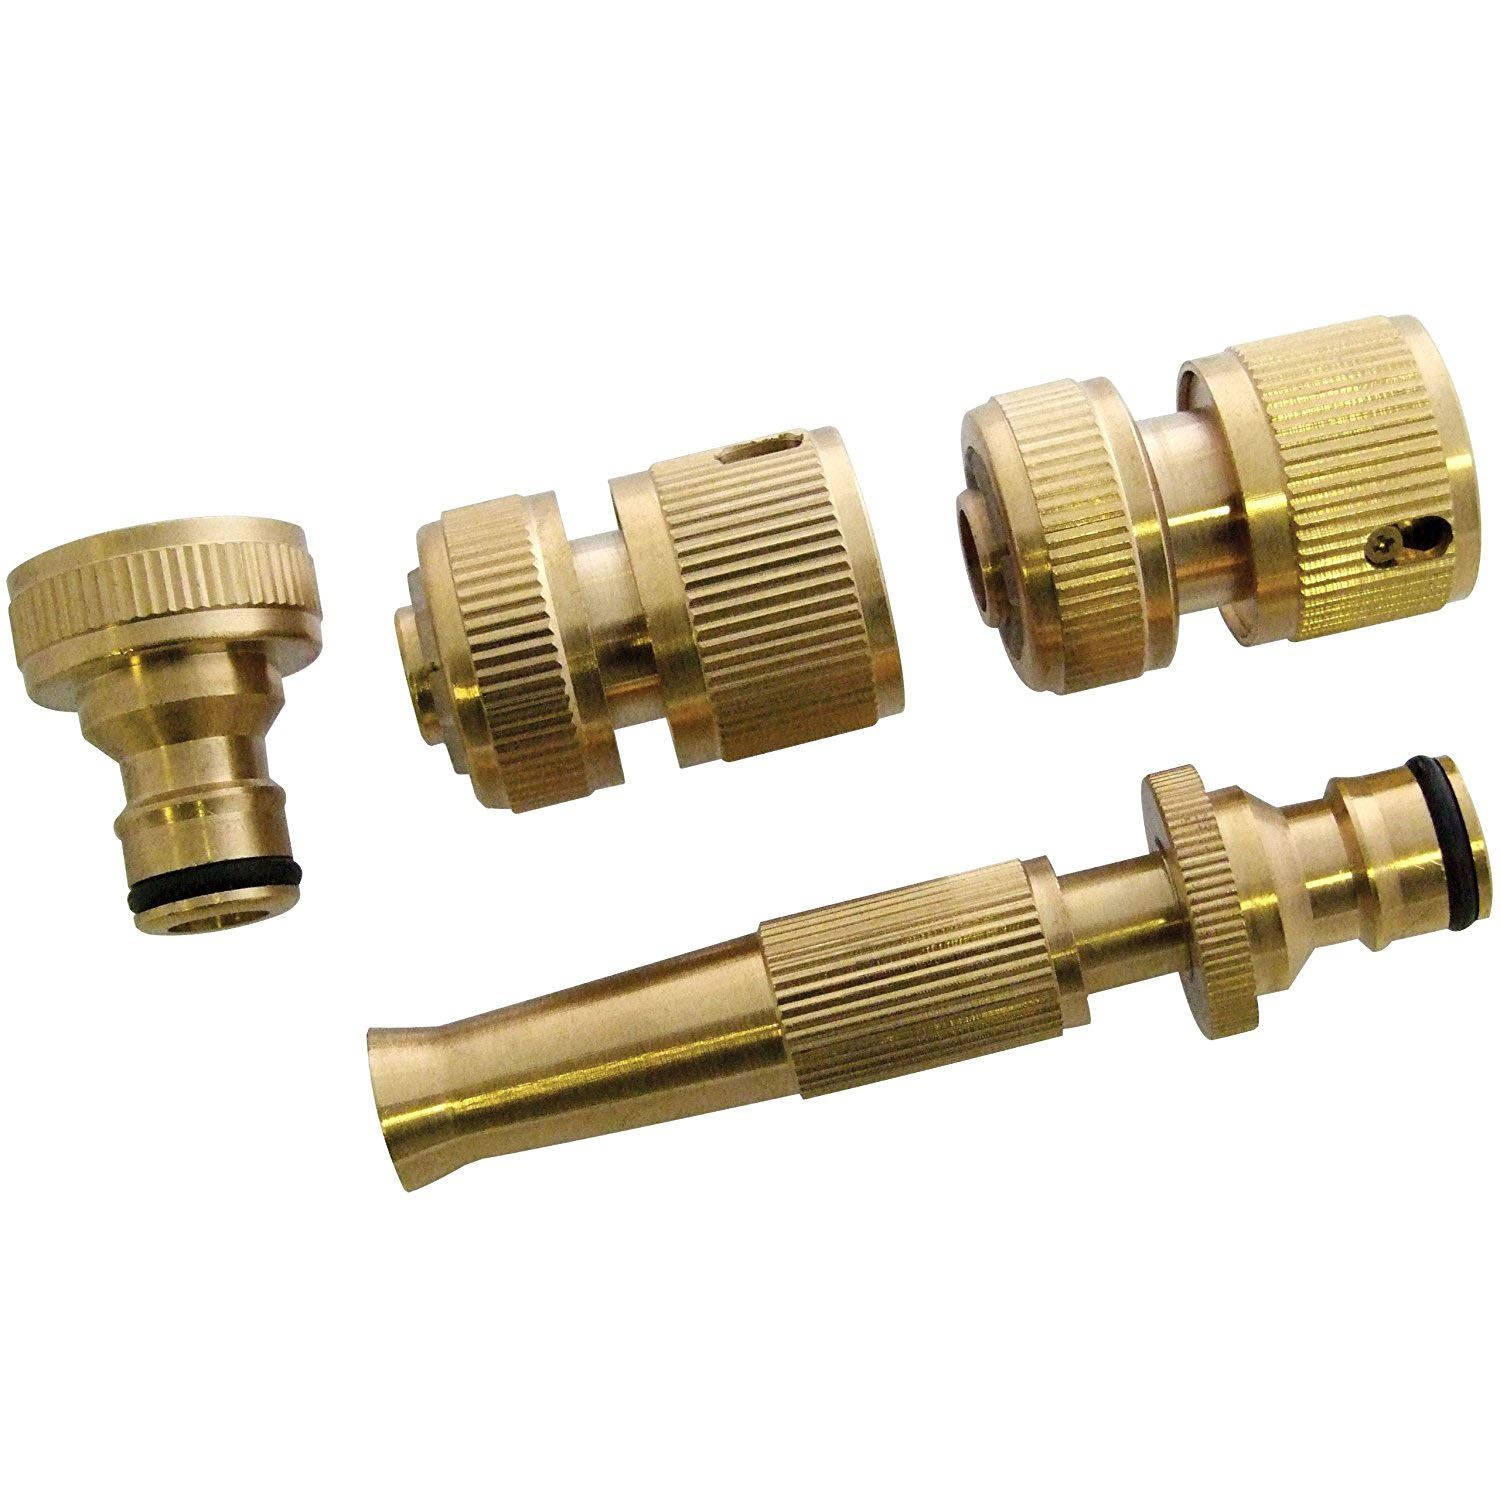 Brass Hose Pipe Fitting Set/ Garden Tap Hosepipe Quick Connectors & spray nozzle